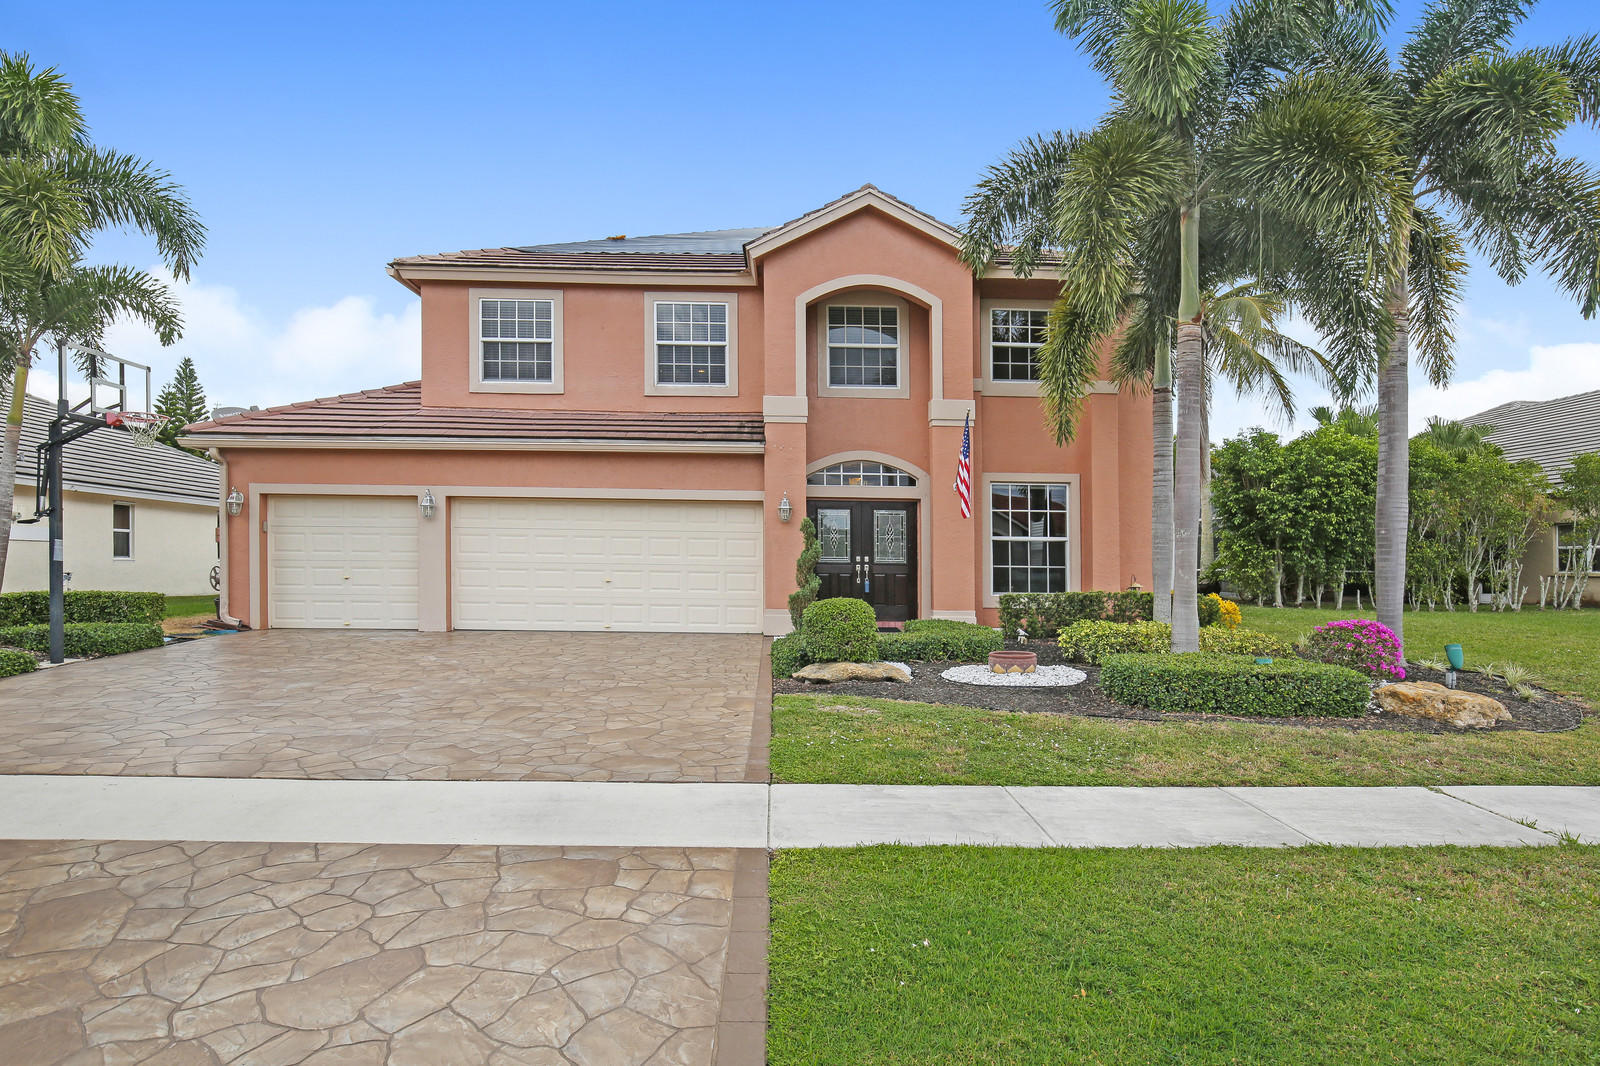 Home for sale in Cape Sable Boca Raton Florida